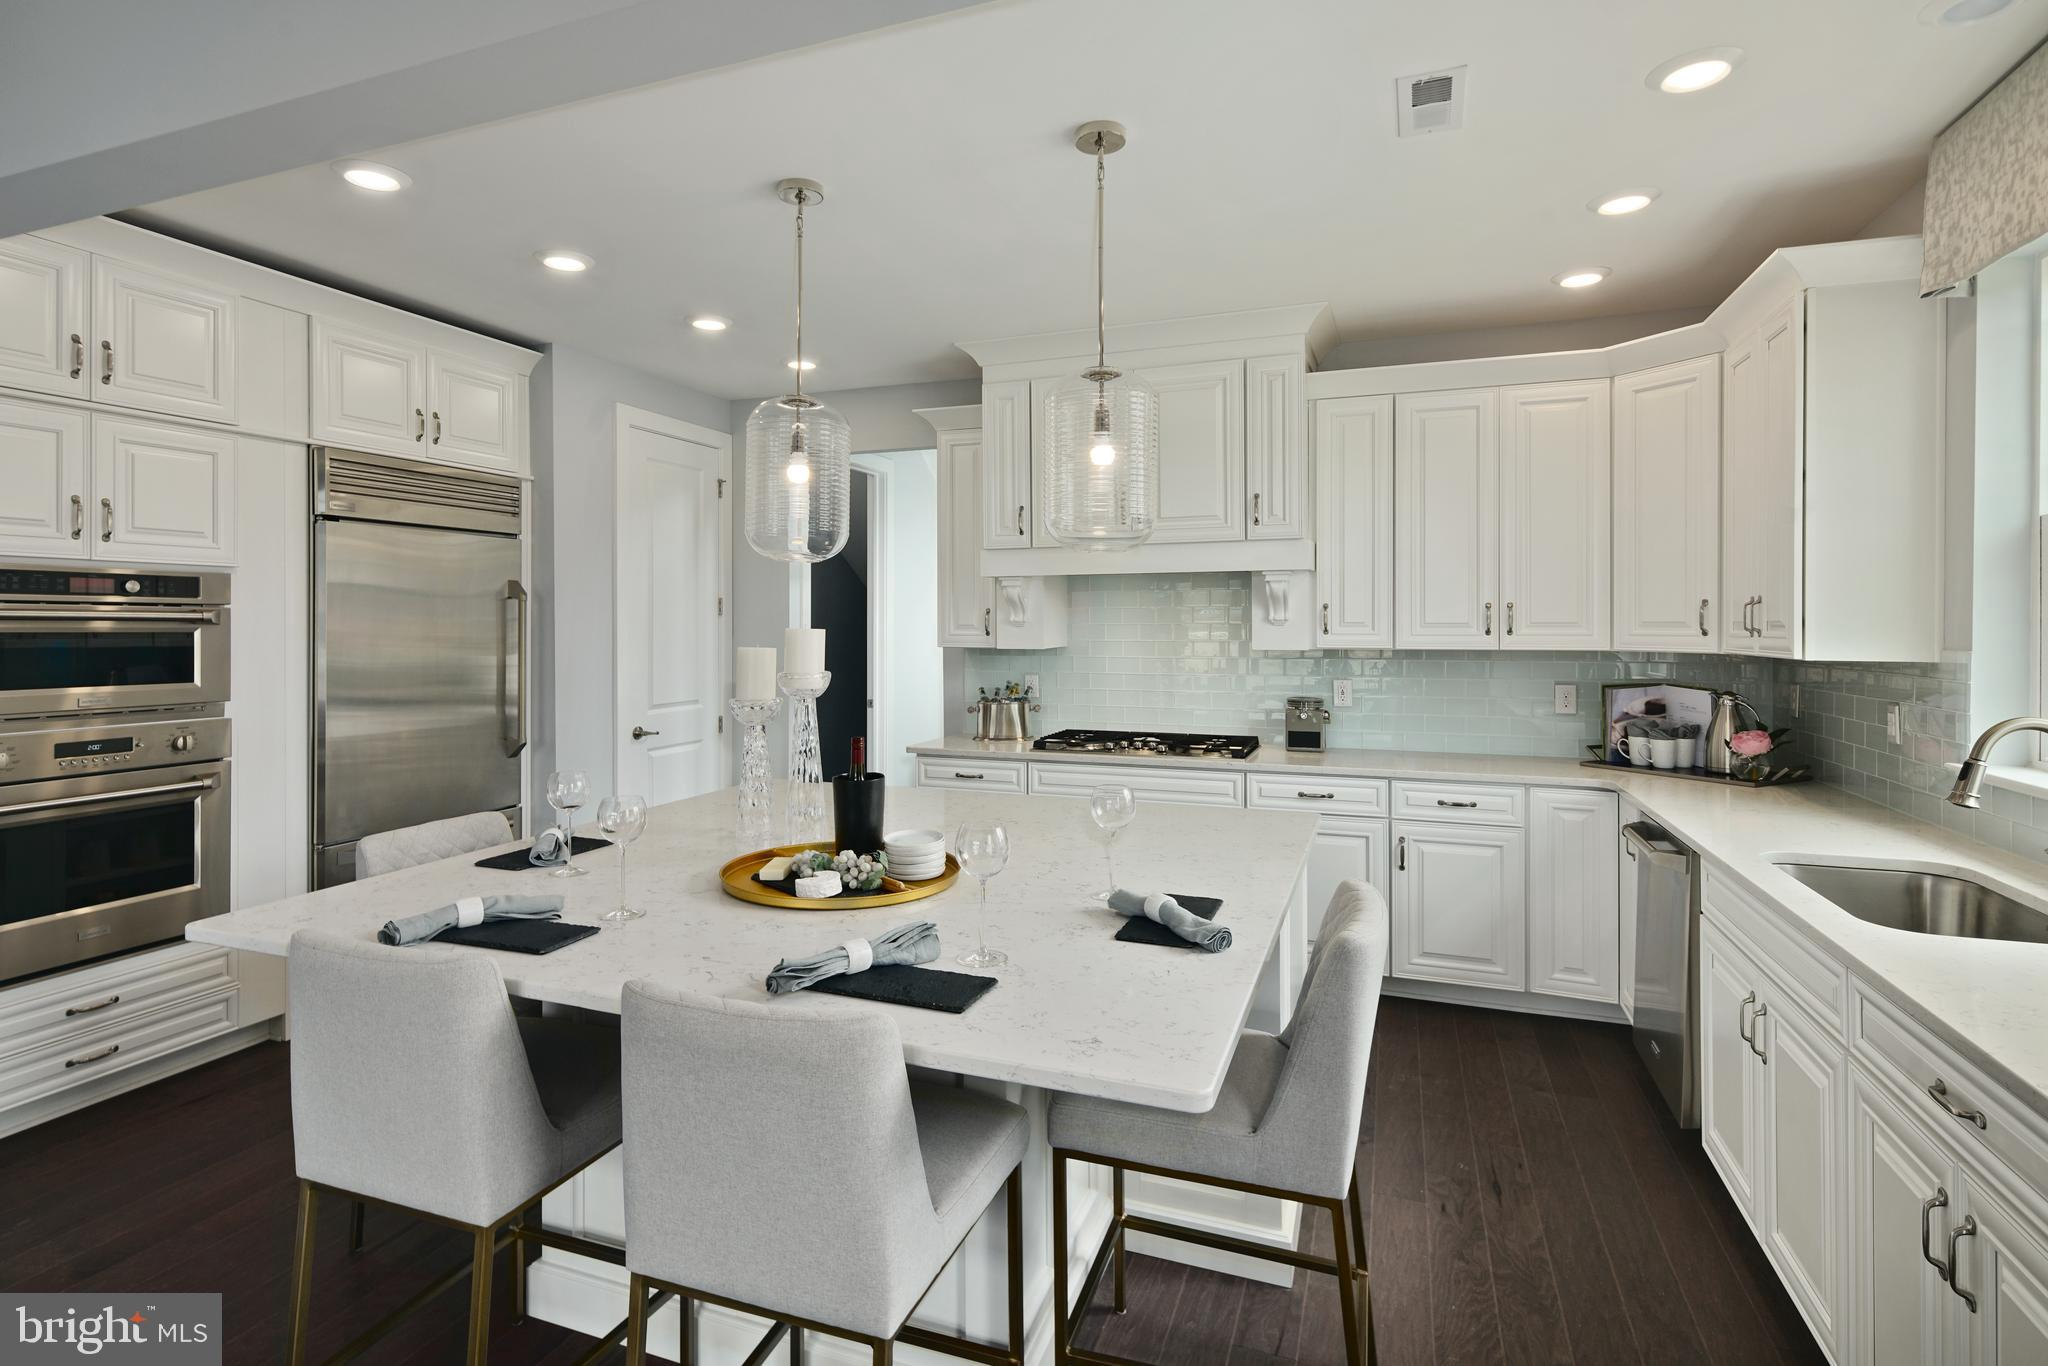 Luxurious 3-Bedroom Condo In Lawrenceville